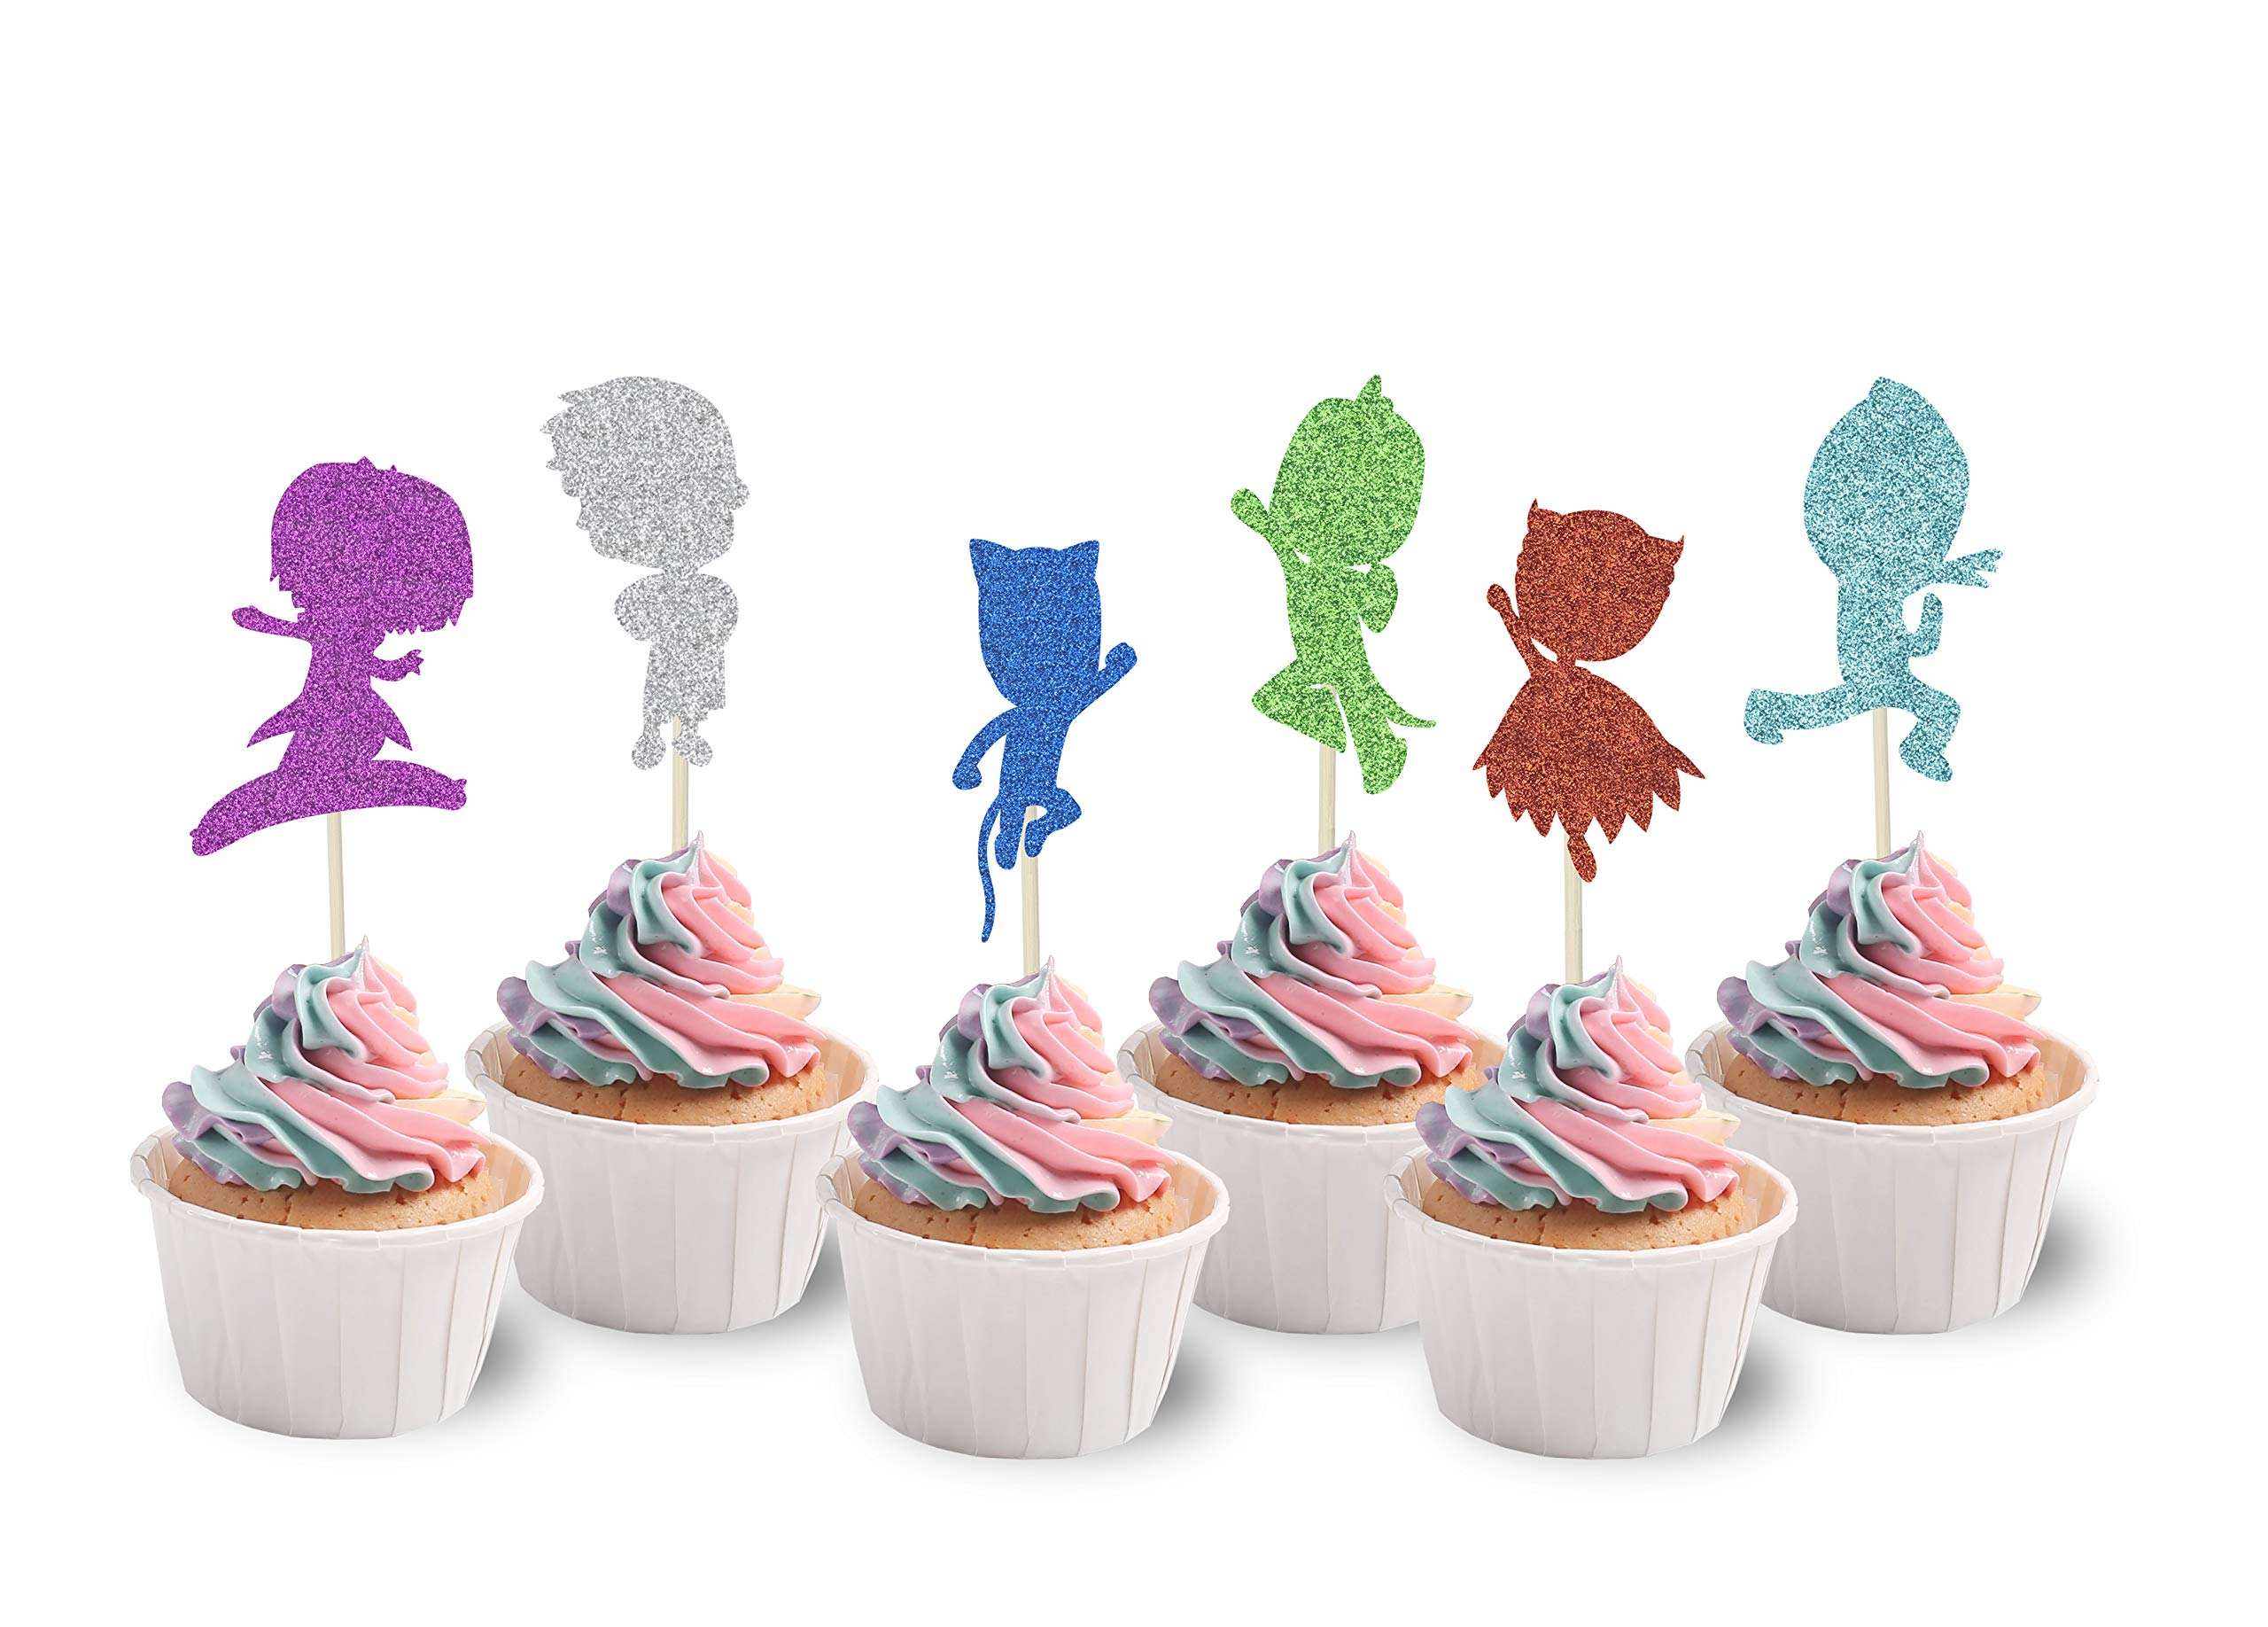 KAPOKKU PJ Glitter Masks Inspired Happy Birthday Cake Topper,Kids Party Supplies Single Sided cupcake Decorations,pack of 24(pj masks cupcake topper)